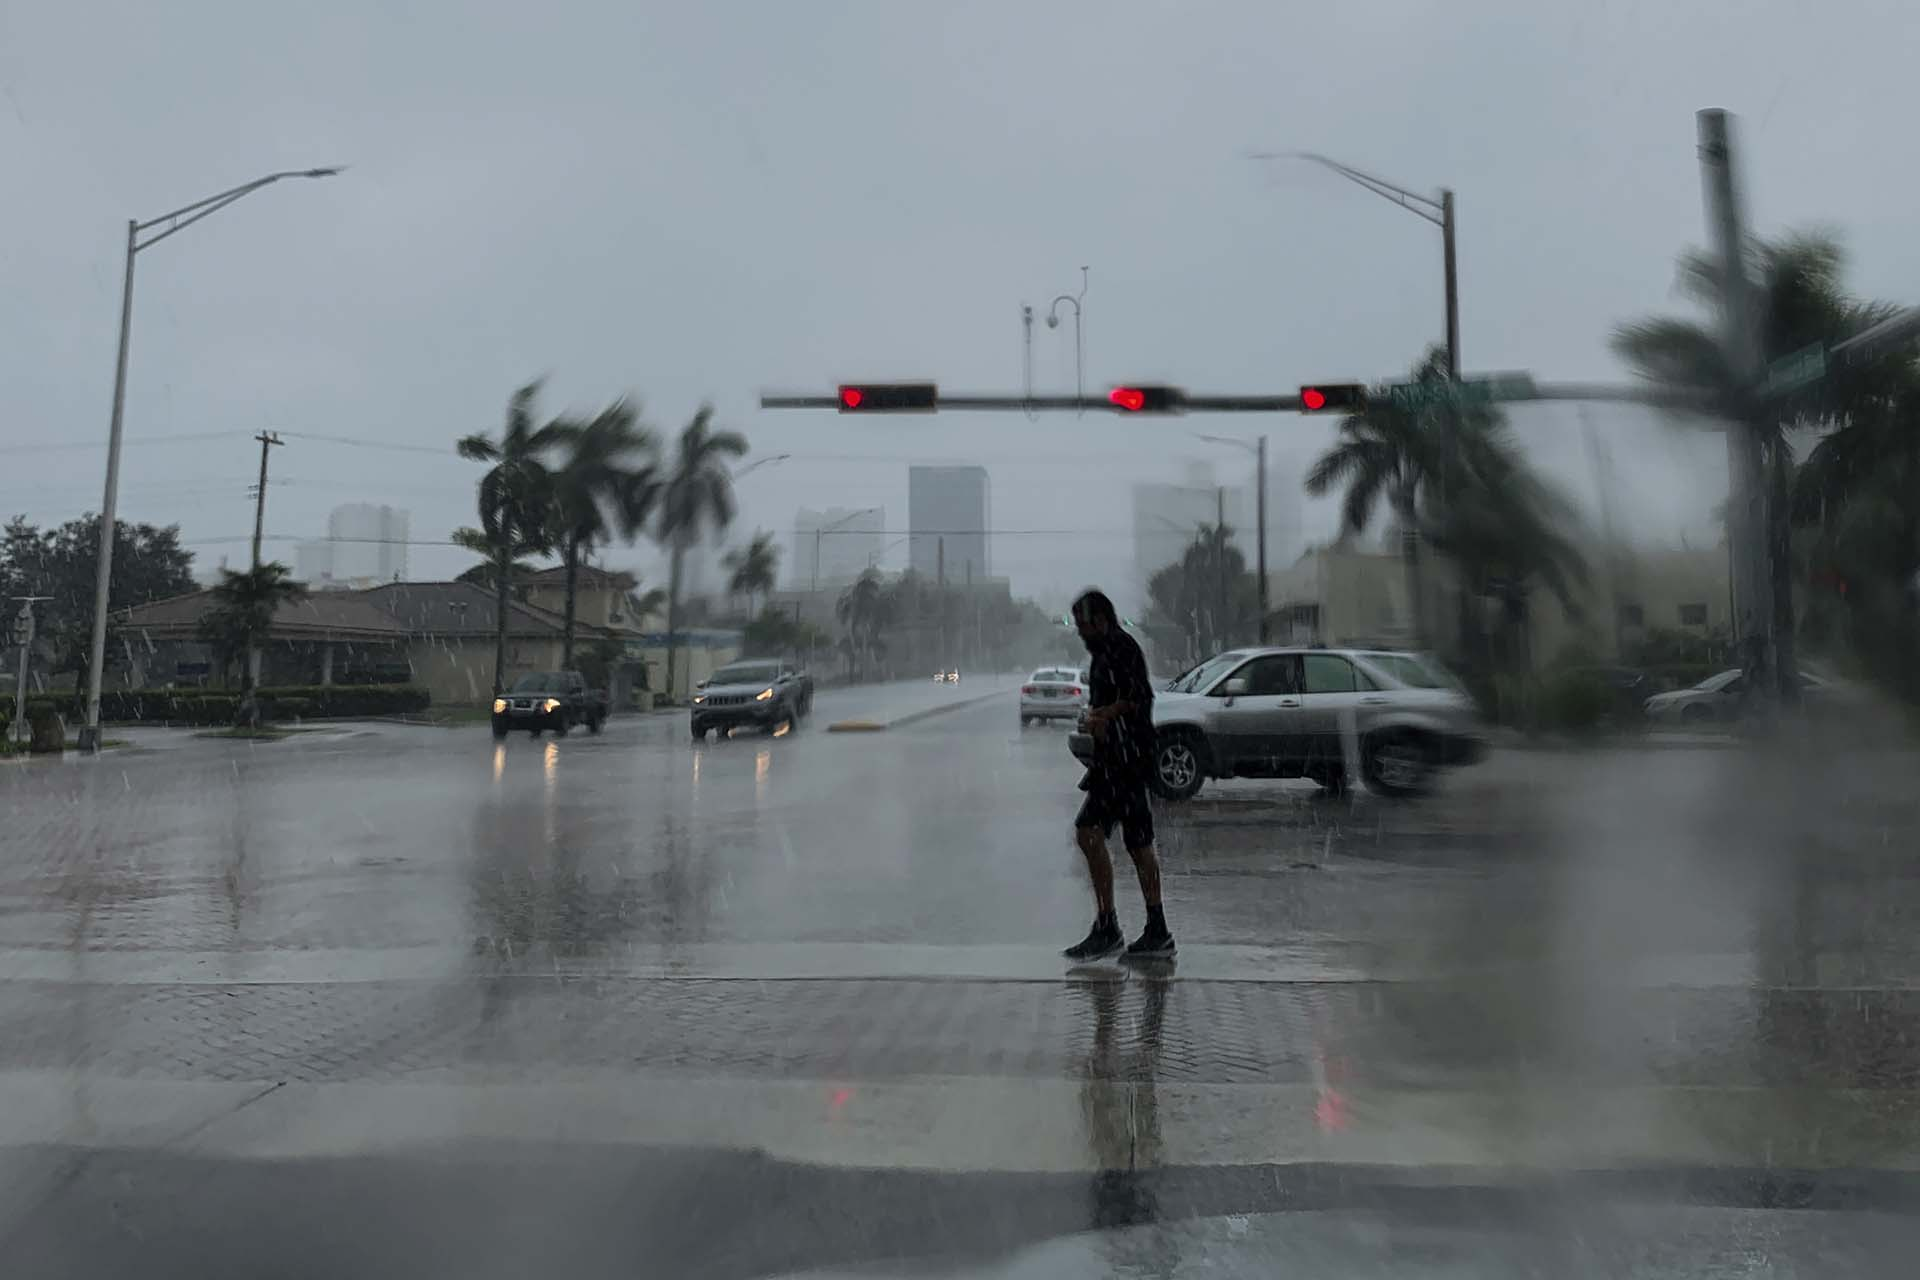 Fort Lauderdale, Florida, el lunes pasado (Photo by Eva Marie UZCATEGUI / AFP)